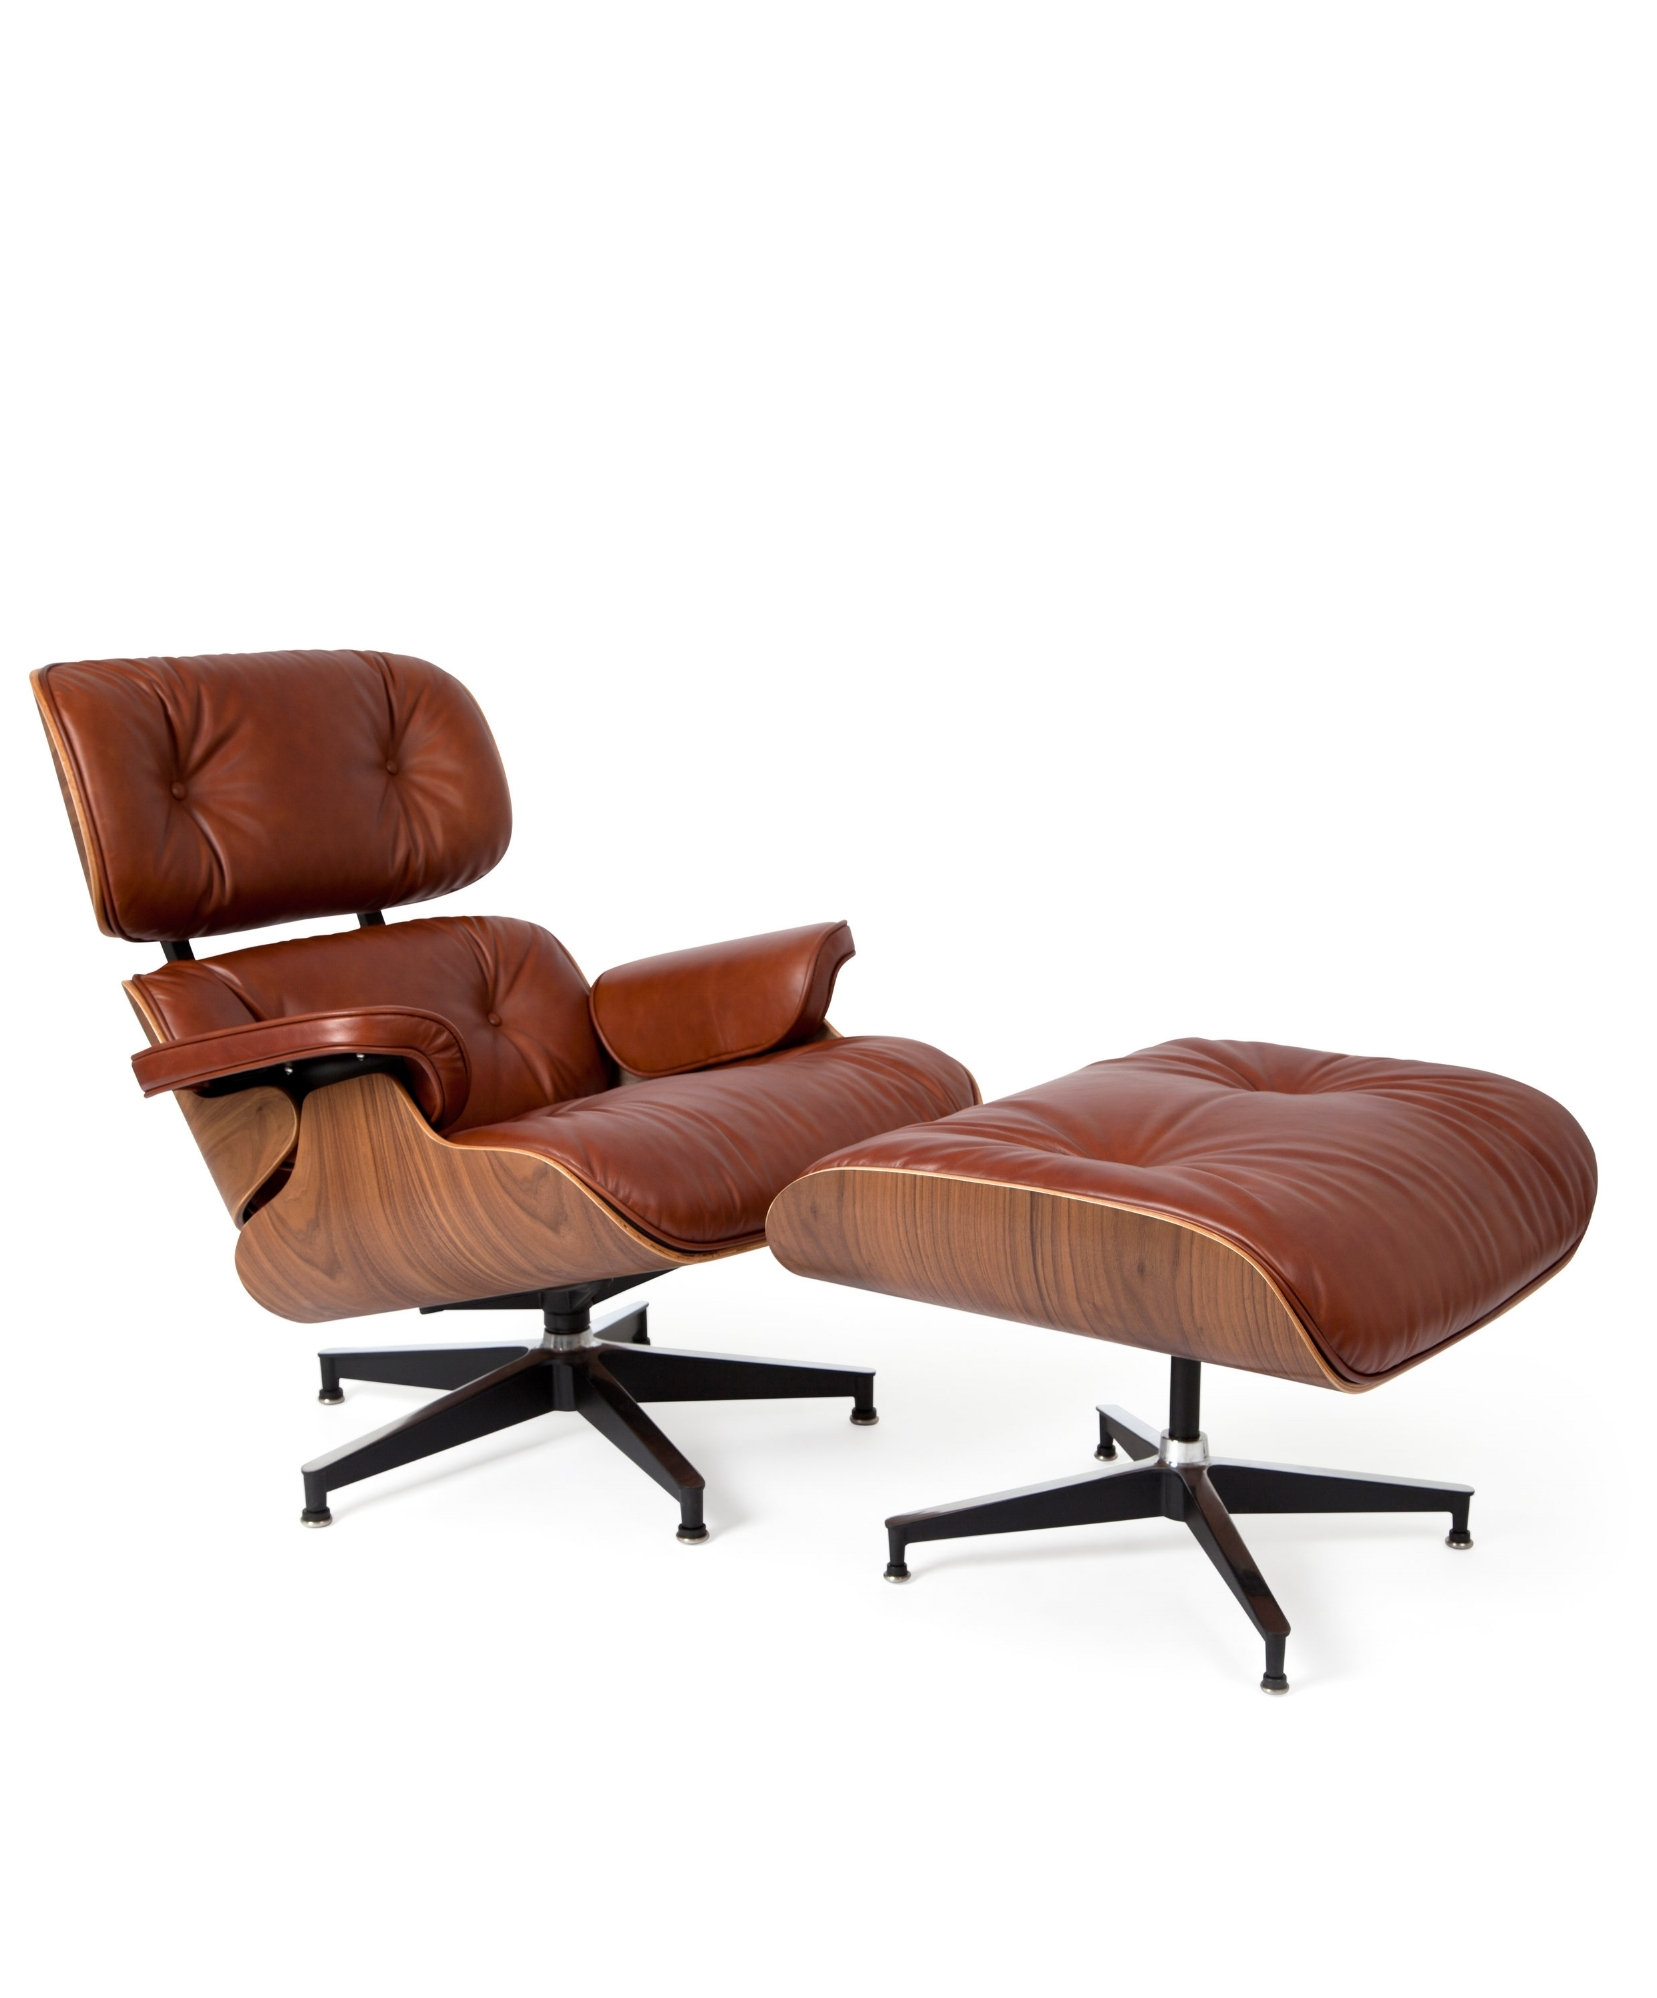 Eanes Chair Eames Style Lounger And Ottoman Ireland Exclusive